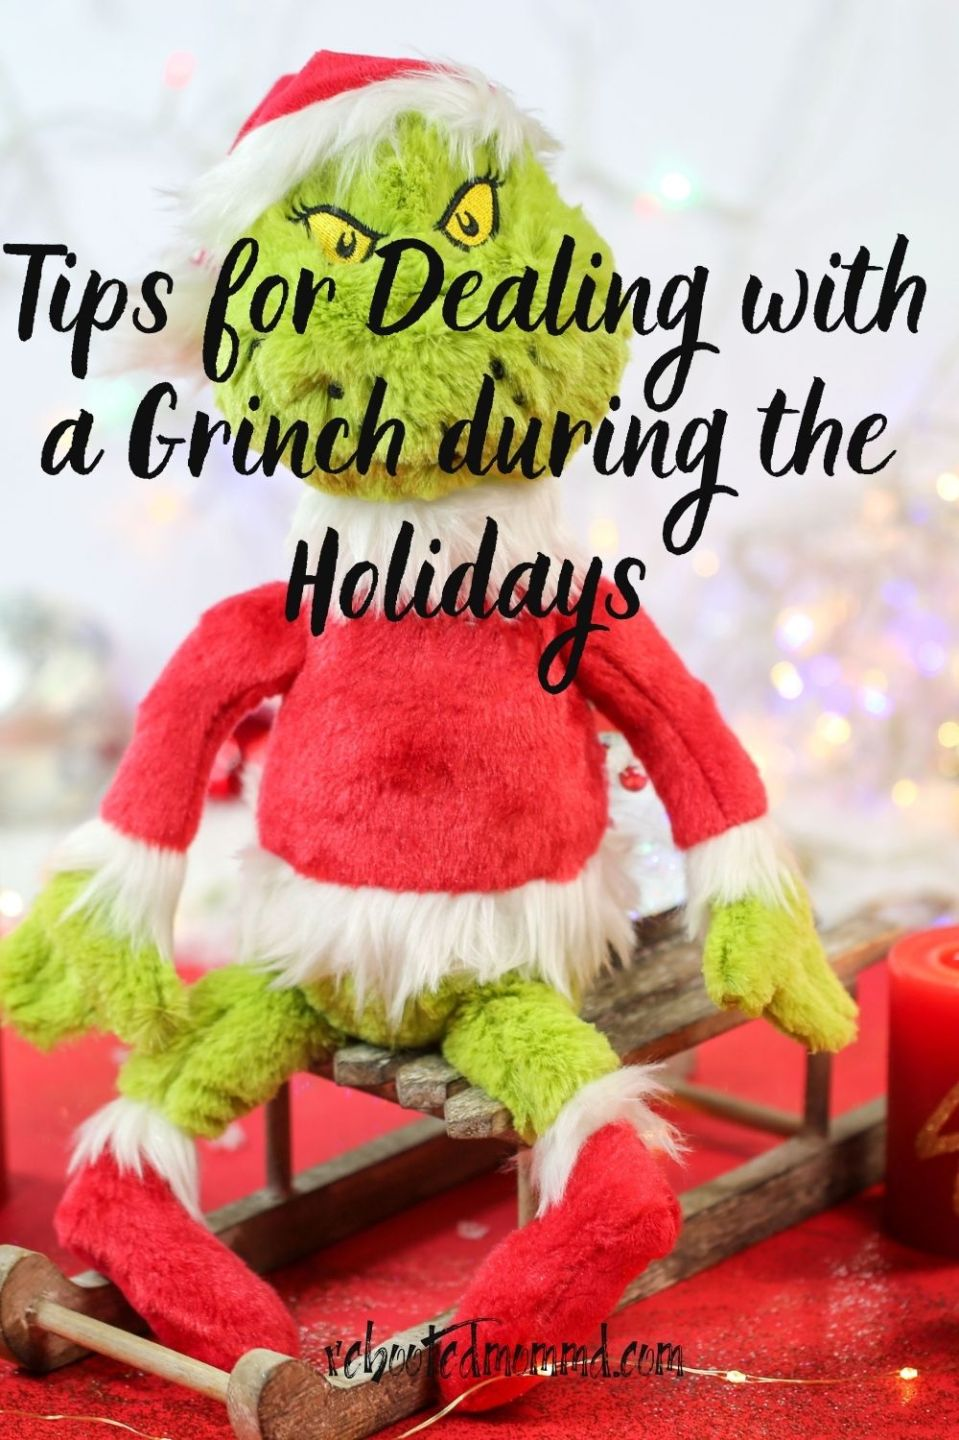 Tips for Dealing with a Grinch during the Holidays